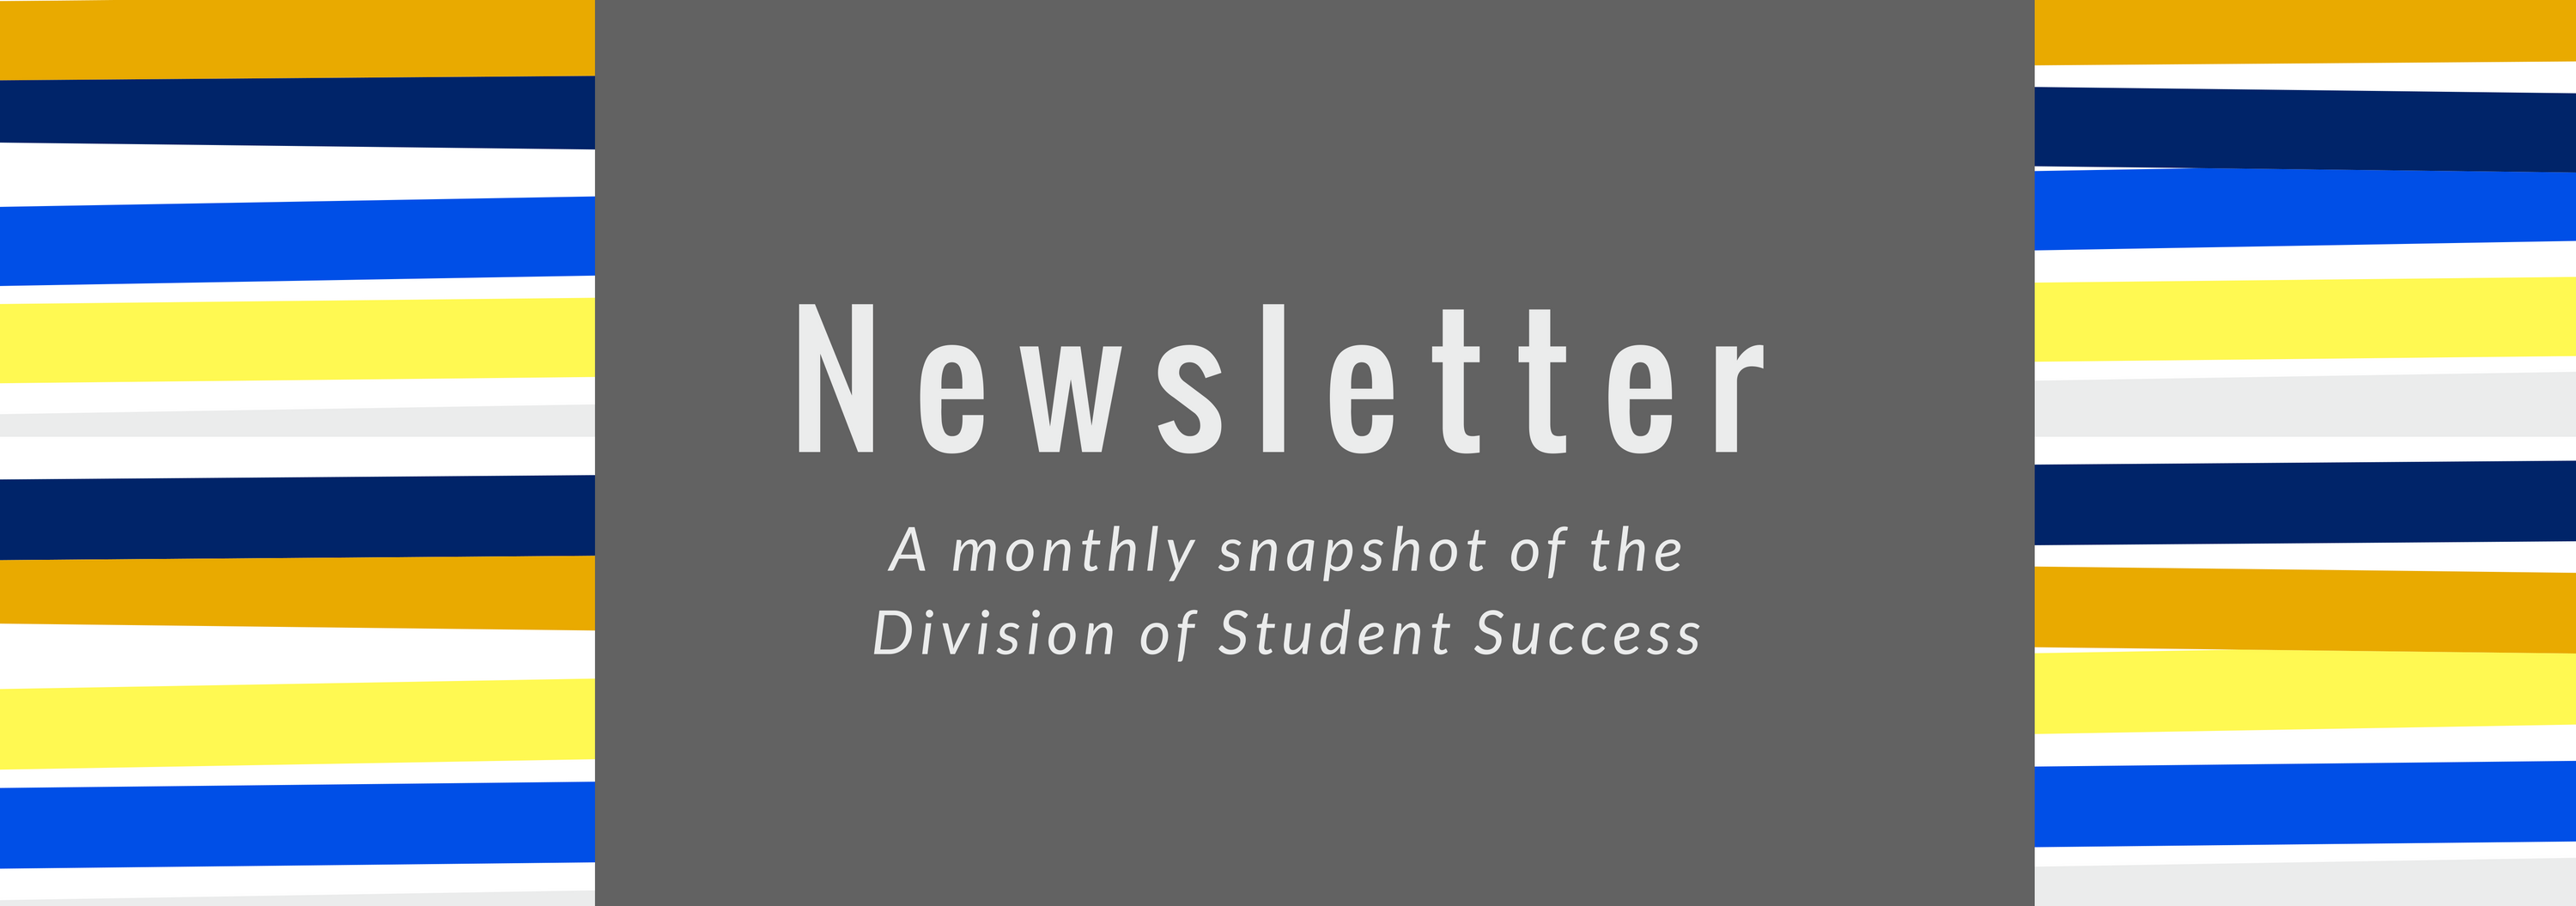 newsletter banner a monthly snapshot of the Division of Student Success